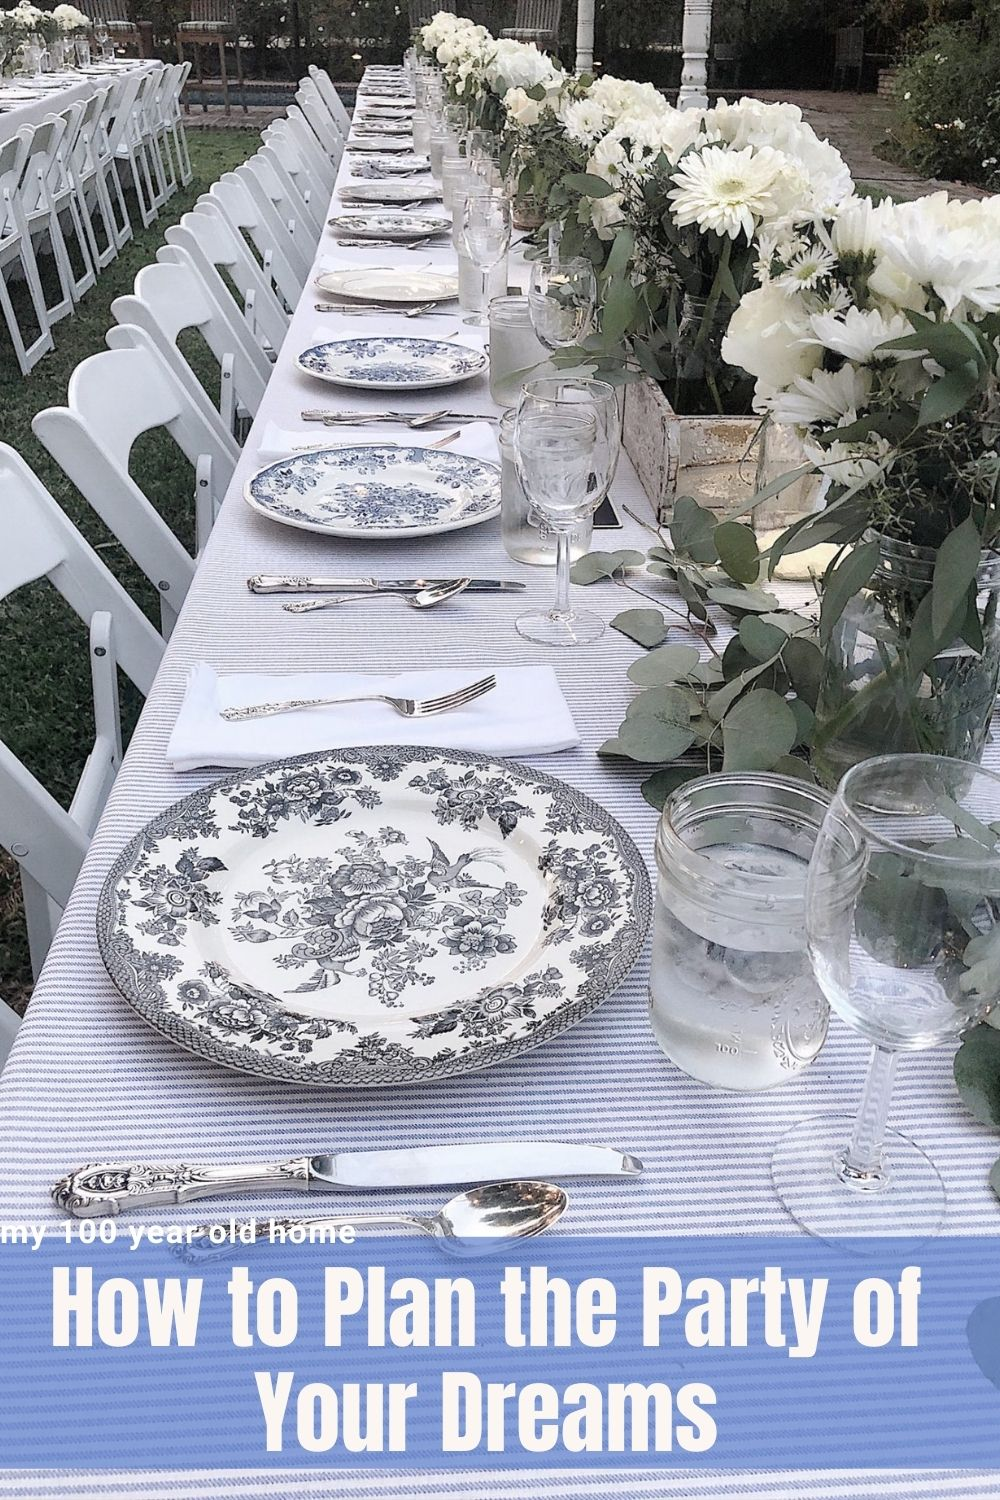 You may not know that I was an event and party planner for a very long time. Today I am sharing one of my favorite themes and parties of all time.